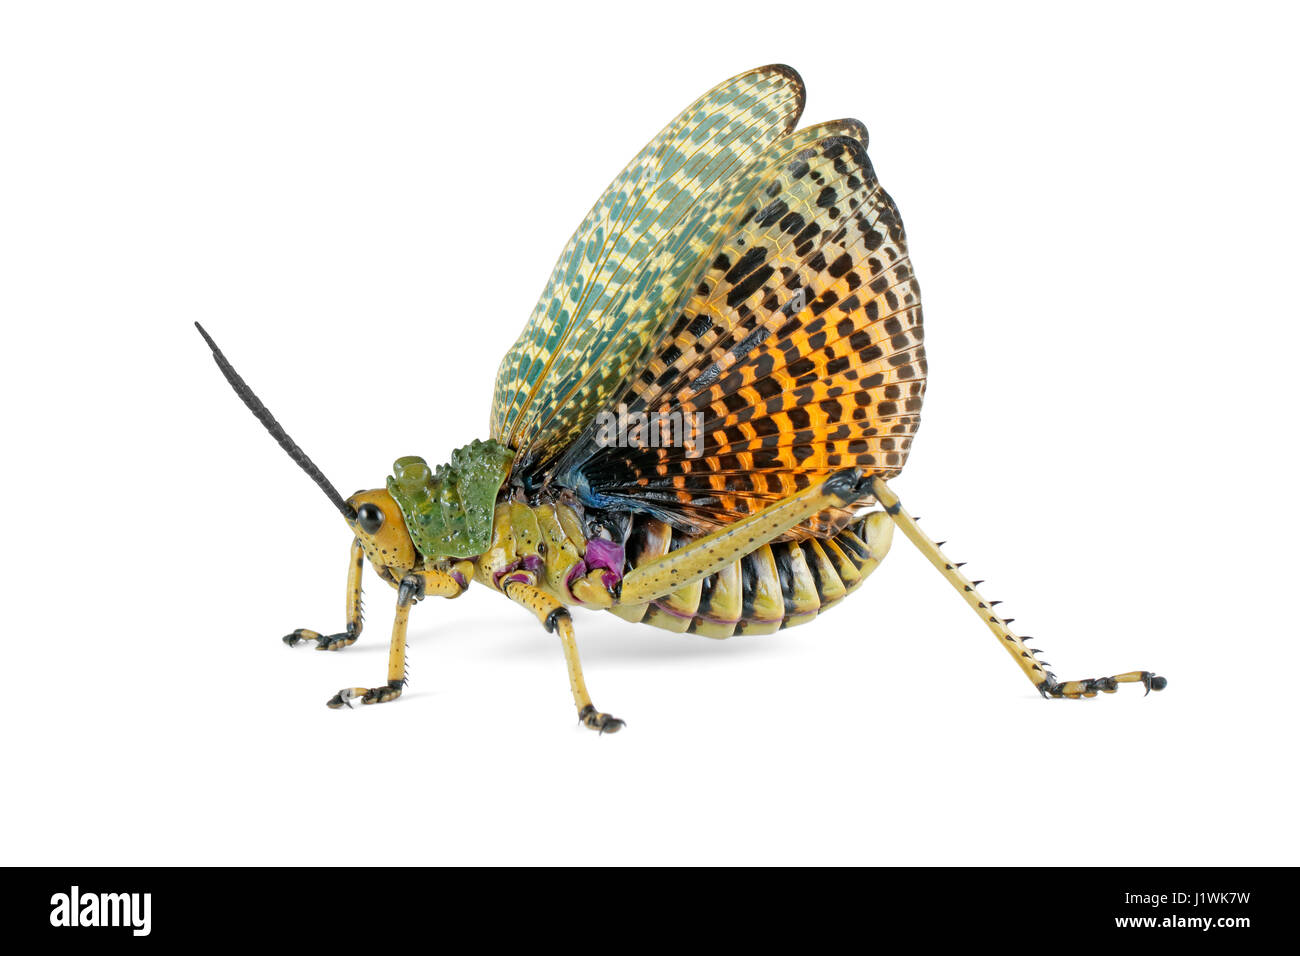 Milkweed locust (Phymateus spp.) with open wings on white, South Africa - Stock Image